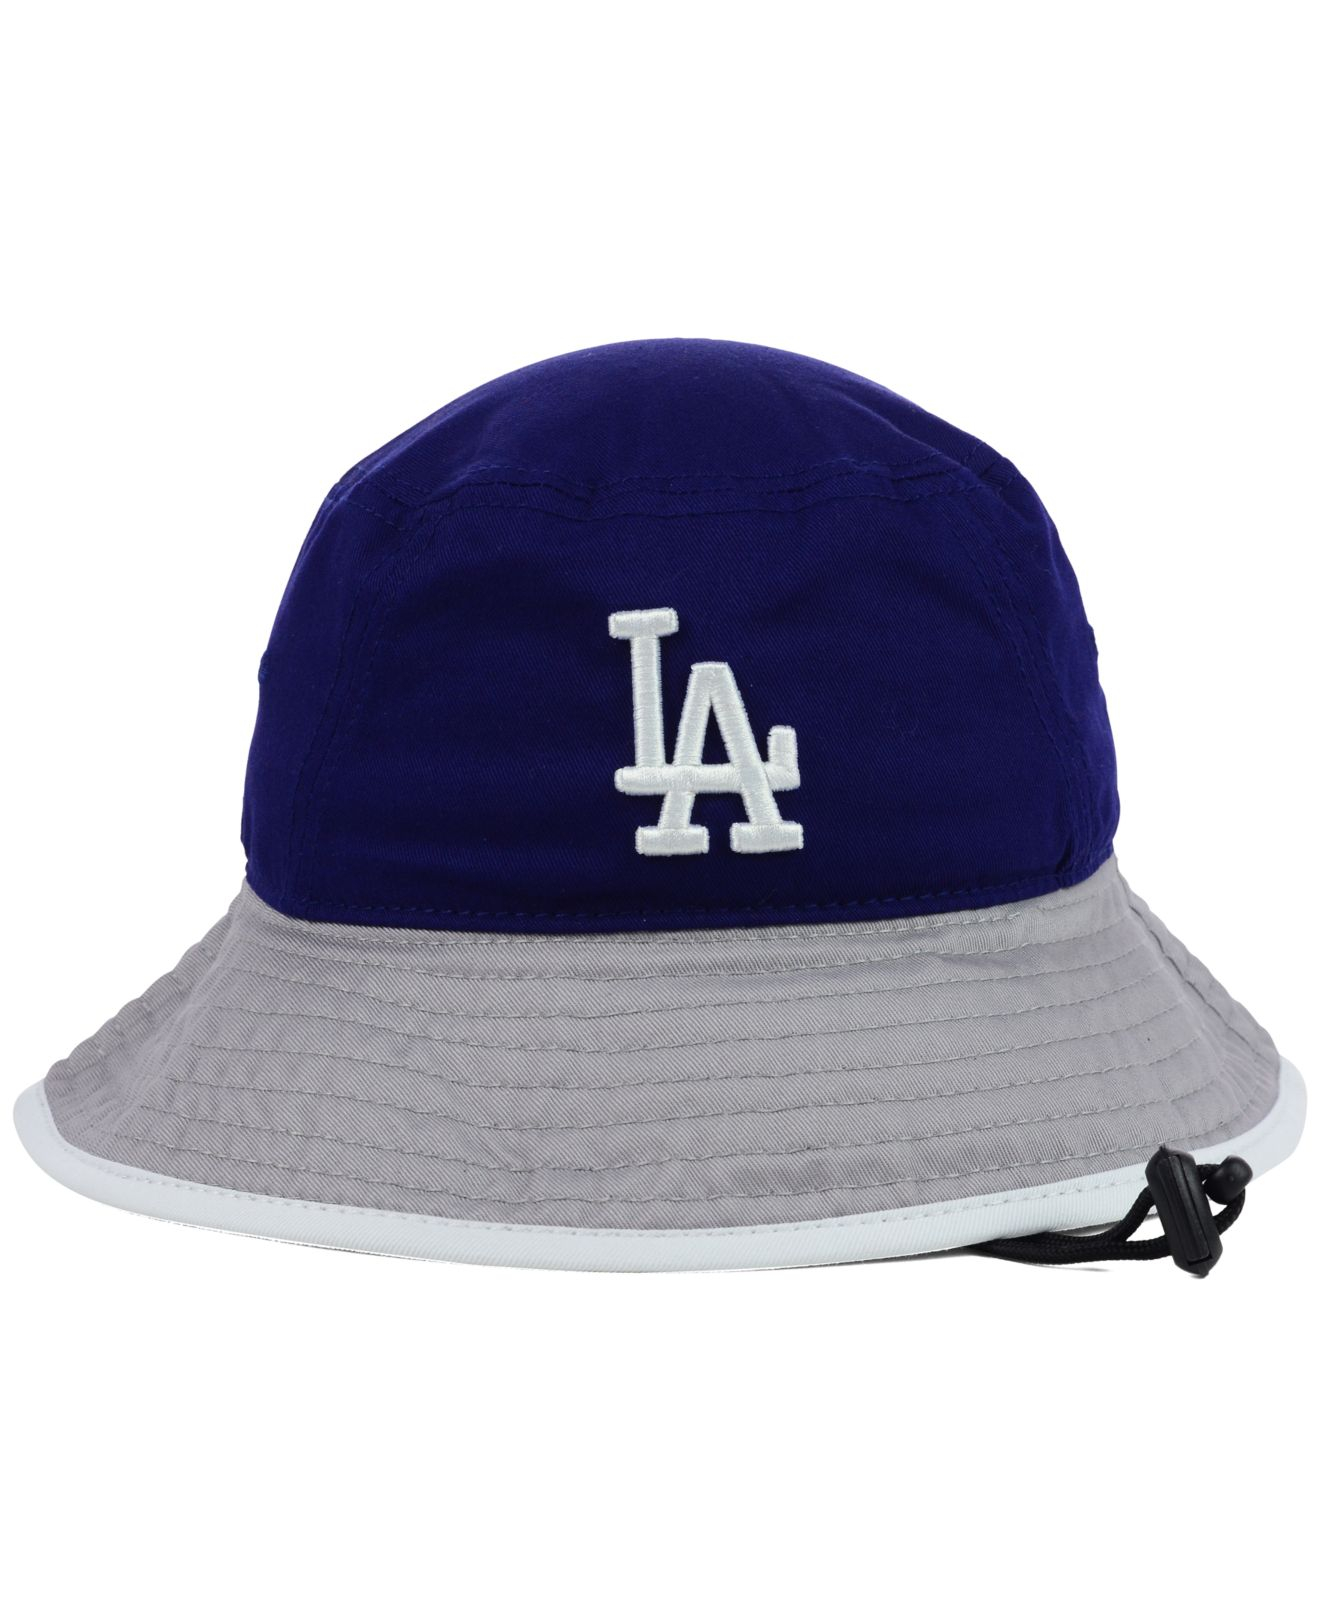 Lyst - KTZ Los Angeles Dodgers Tipped Bucket Hat in Blue for Men 544608d5df8